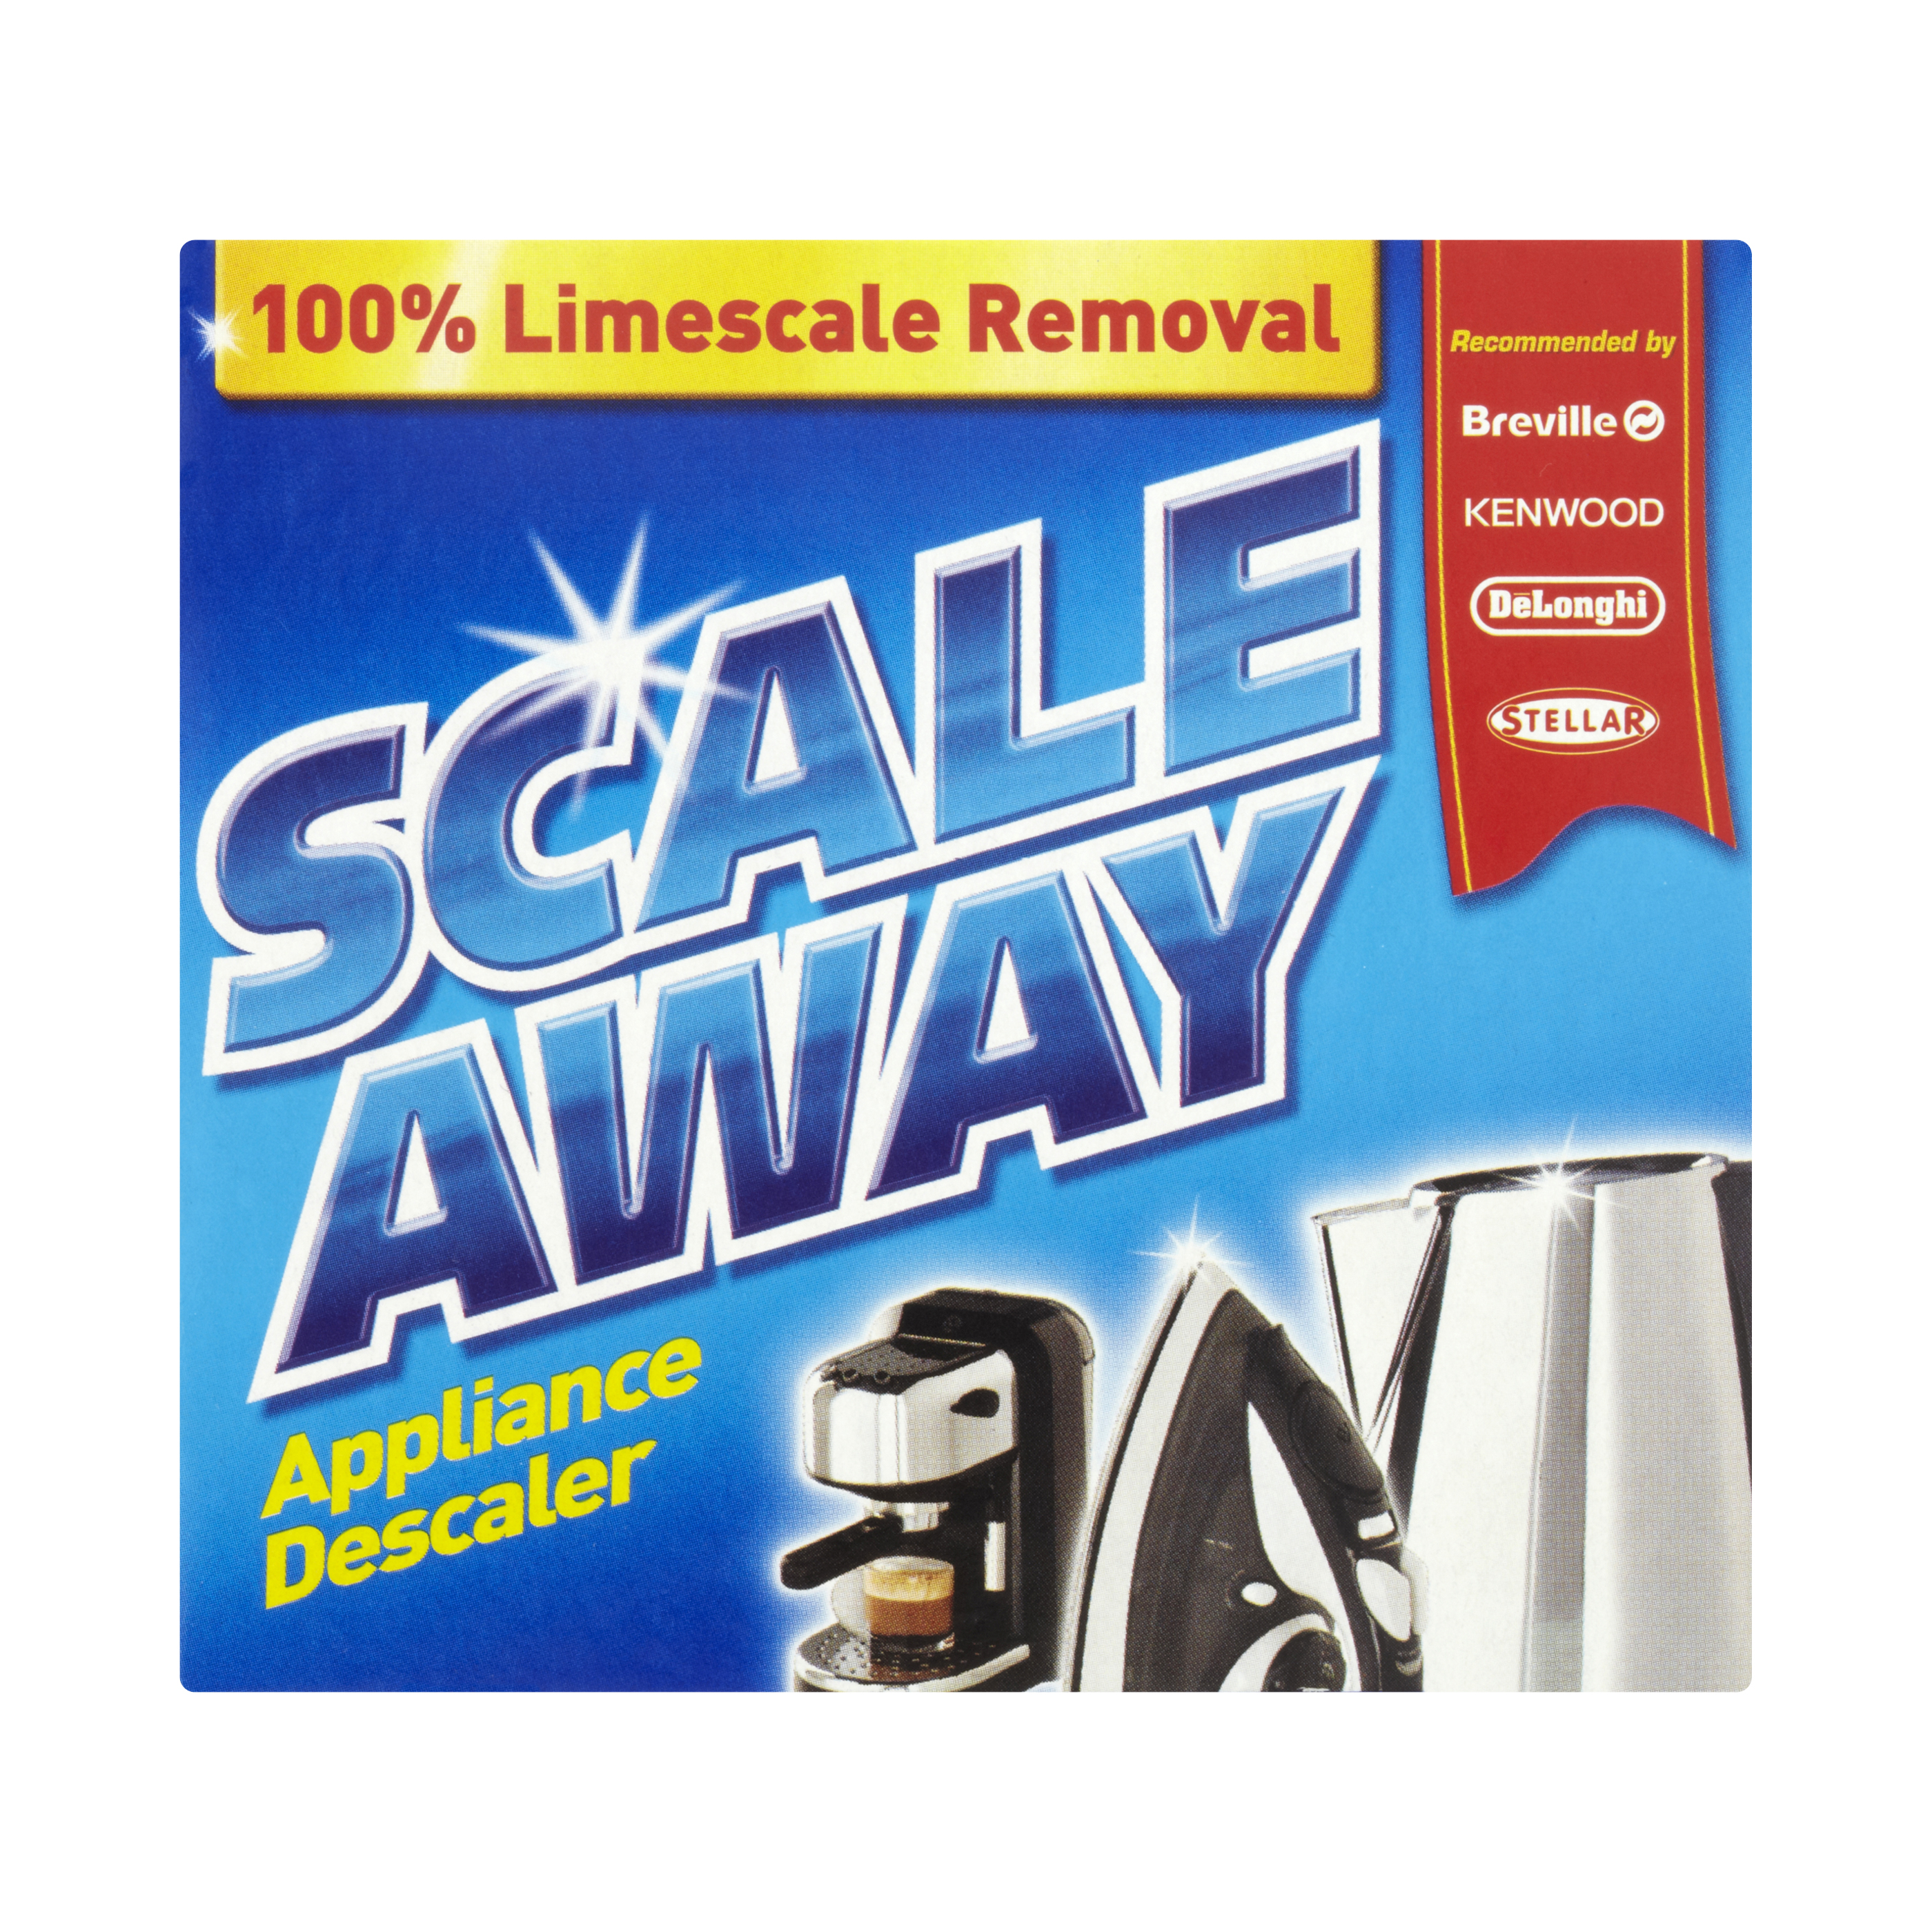 Cleaning Chemicals Scaleaway De-Scaler 4x75g Ref RB2158